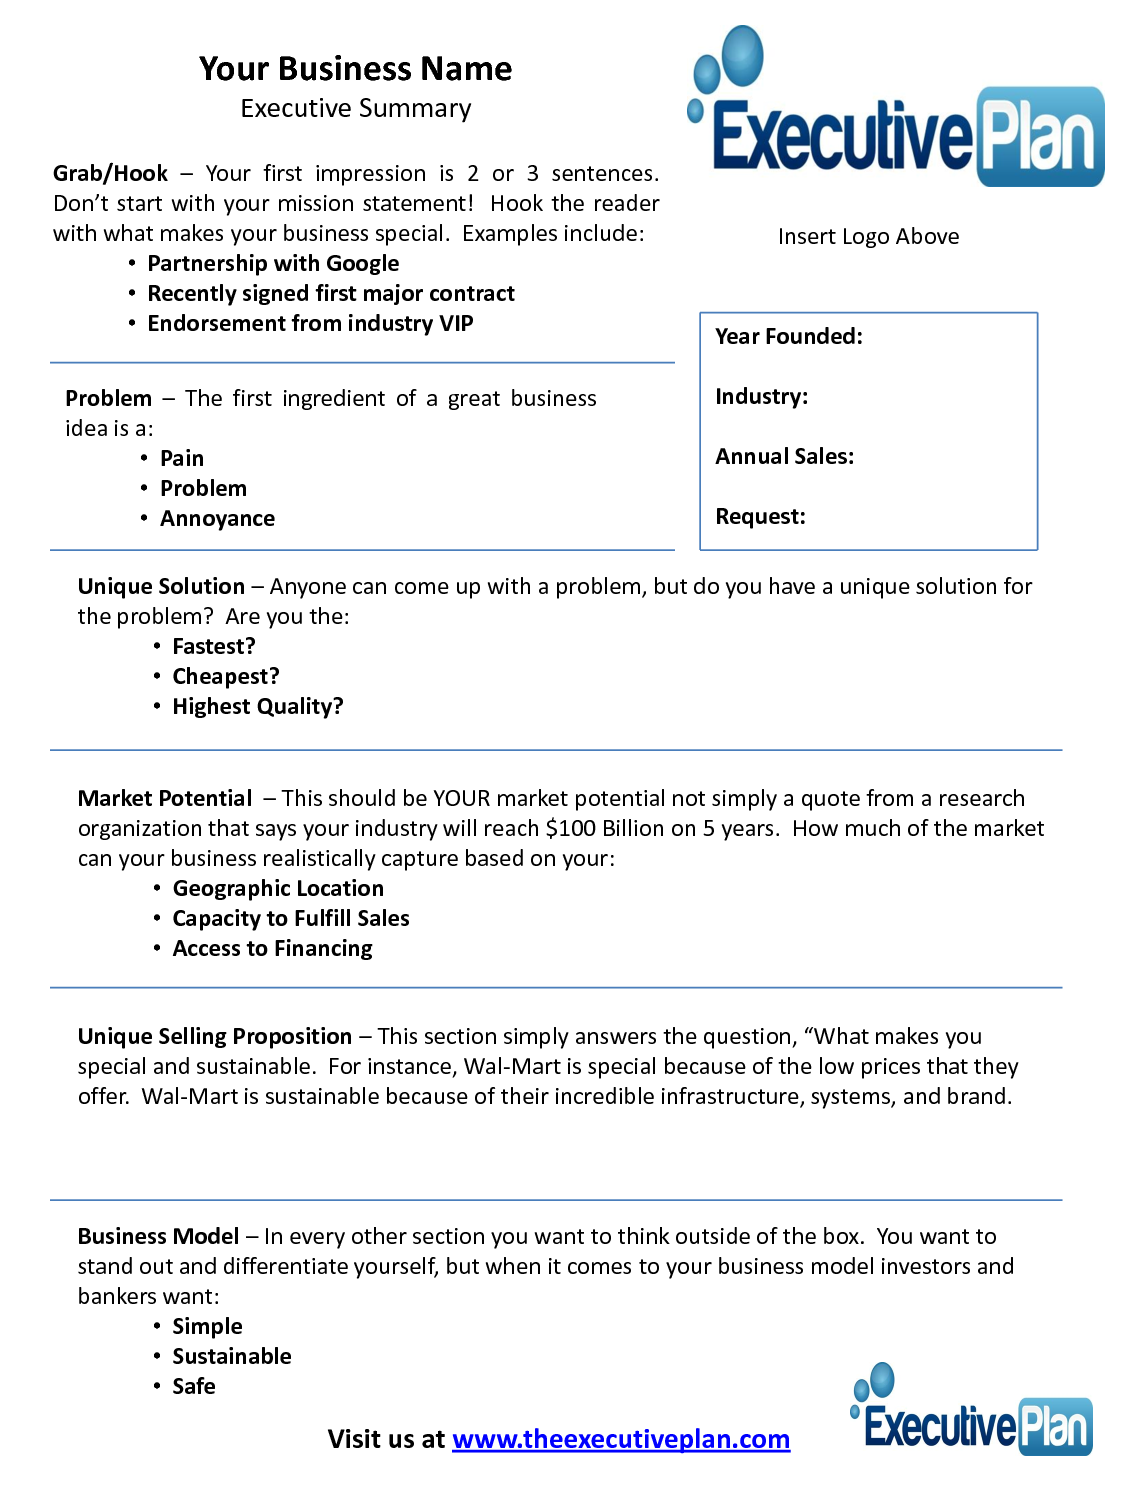 10 Best ideas about Executive Summary – Executive Summary Template Free